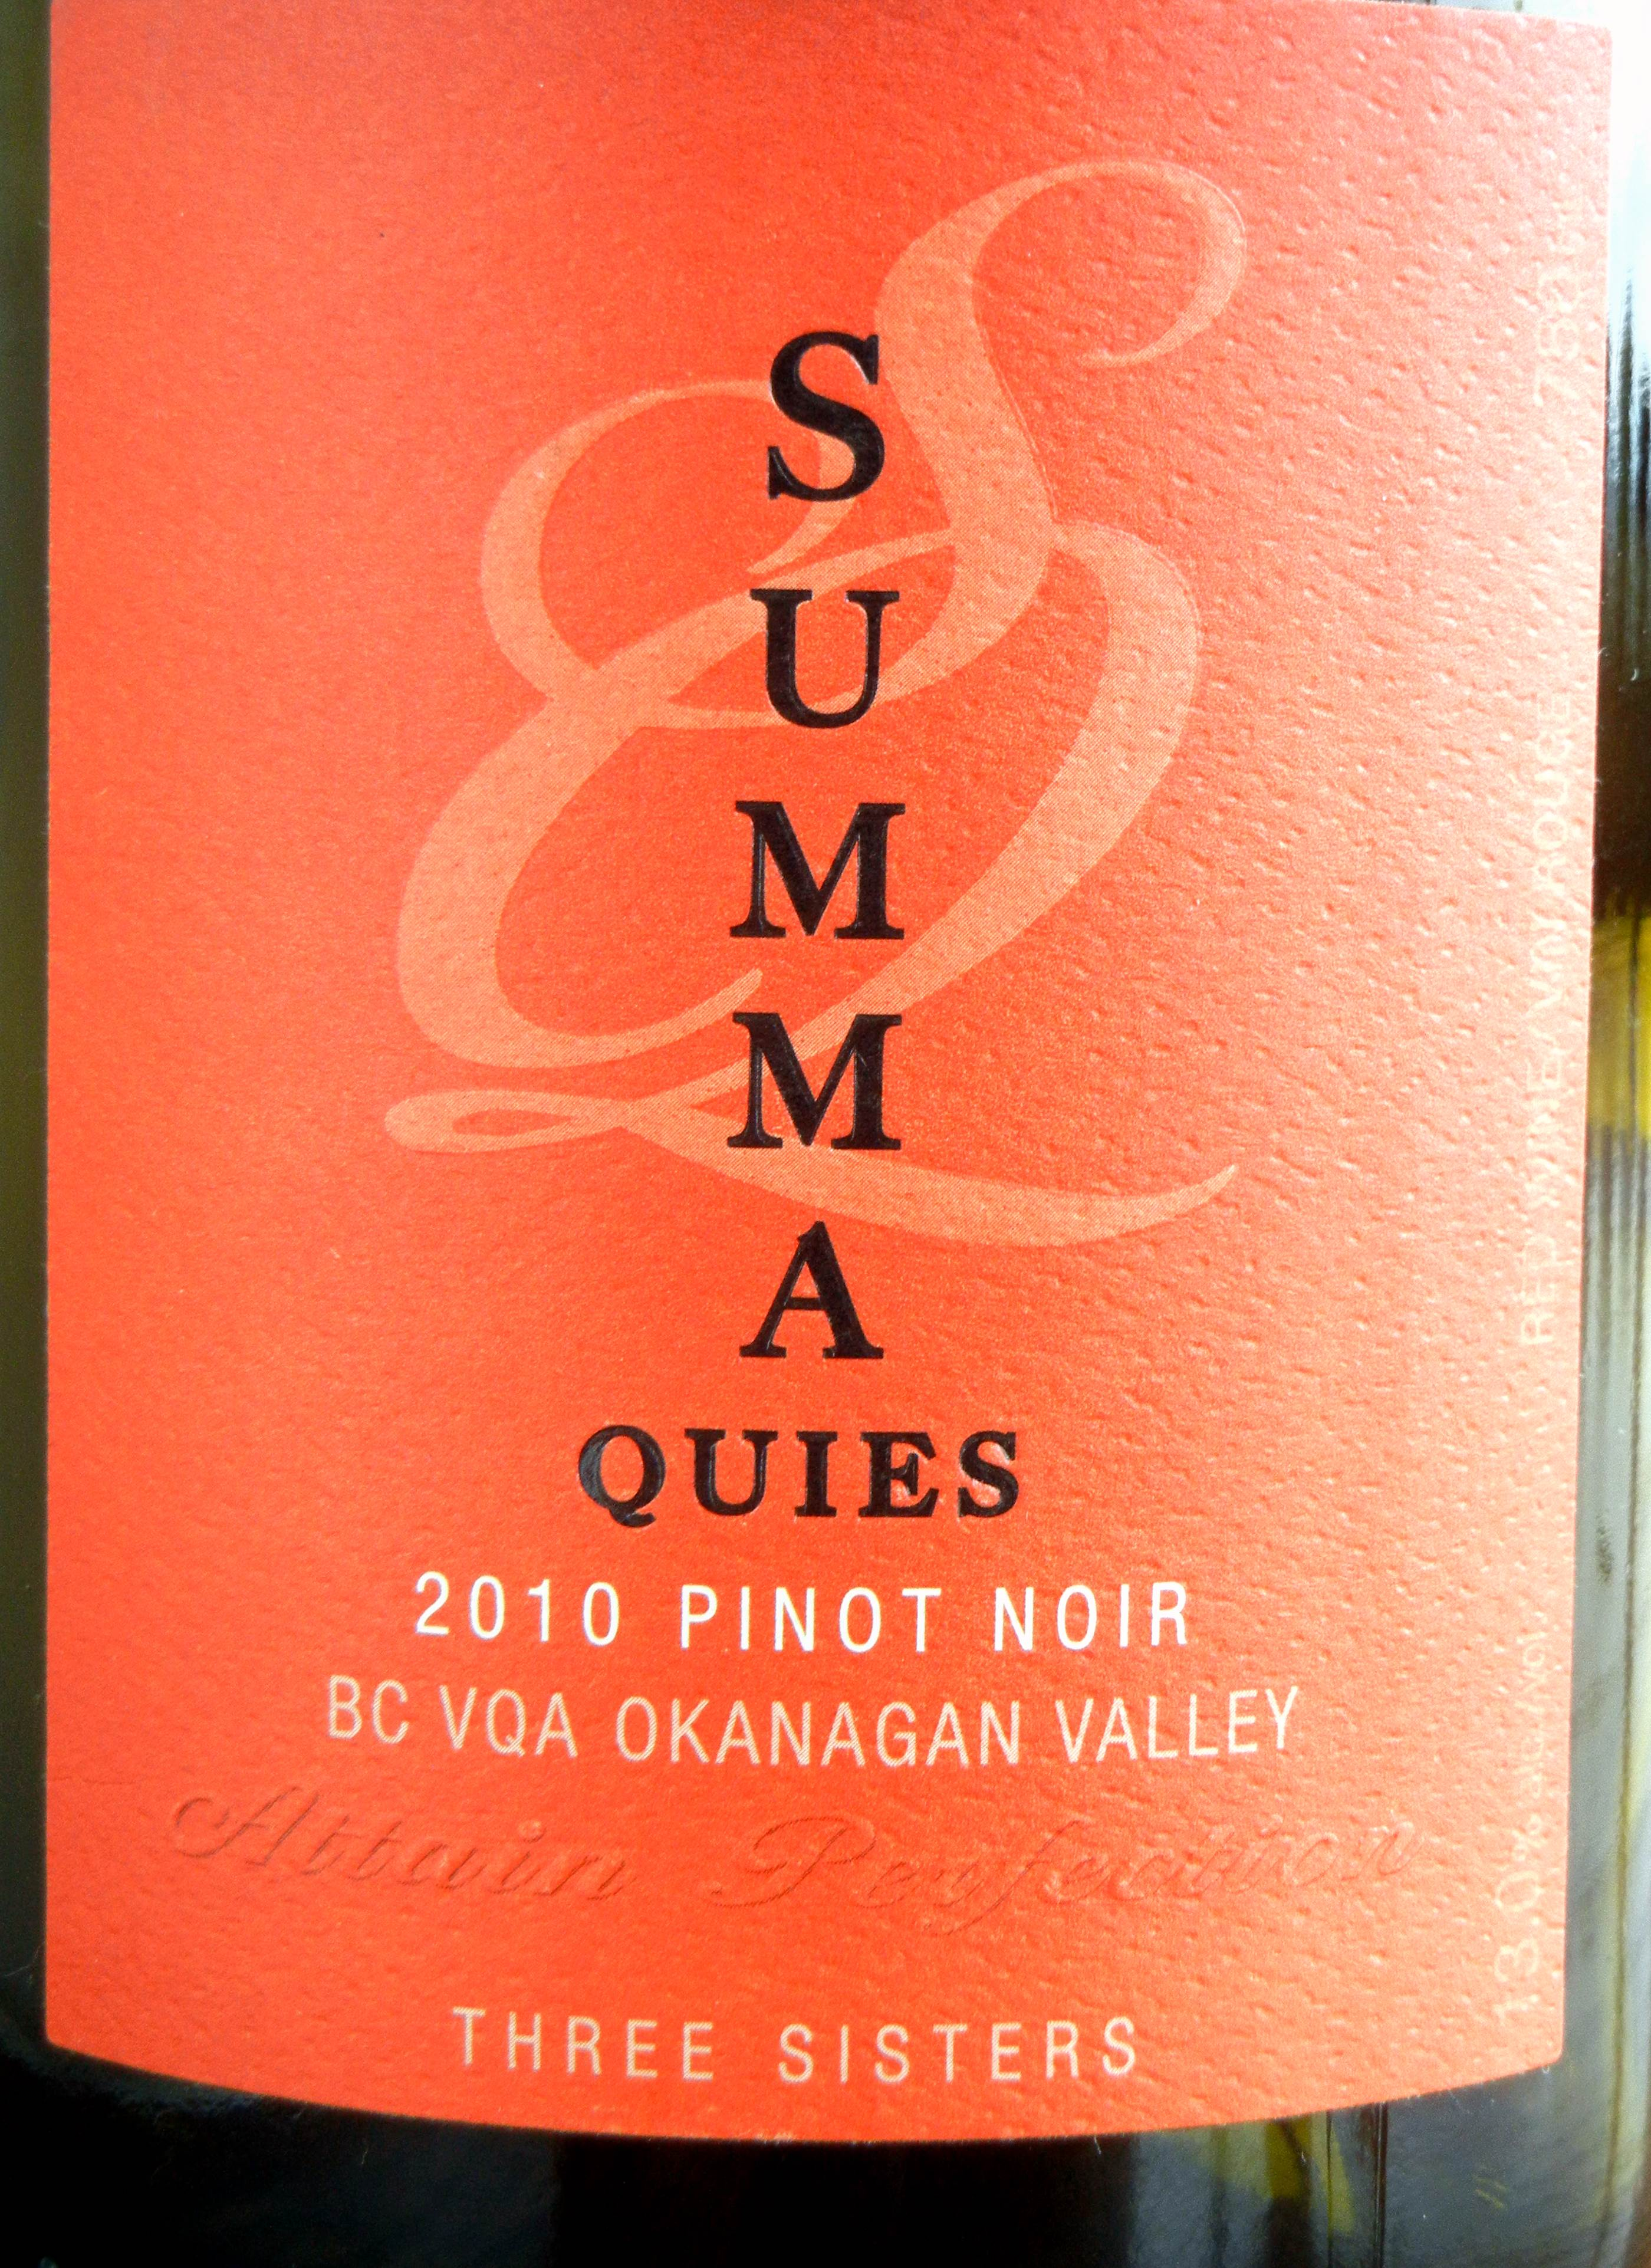 Howling Bluff Summa Quies Three Sisters Pinot Noir 2010 Label - BC Pinot Noir Tasting Review 10